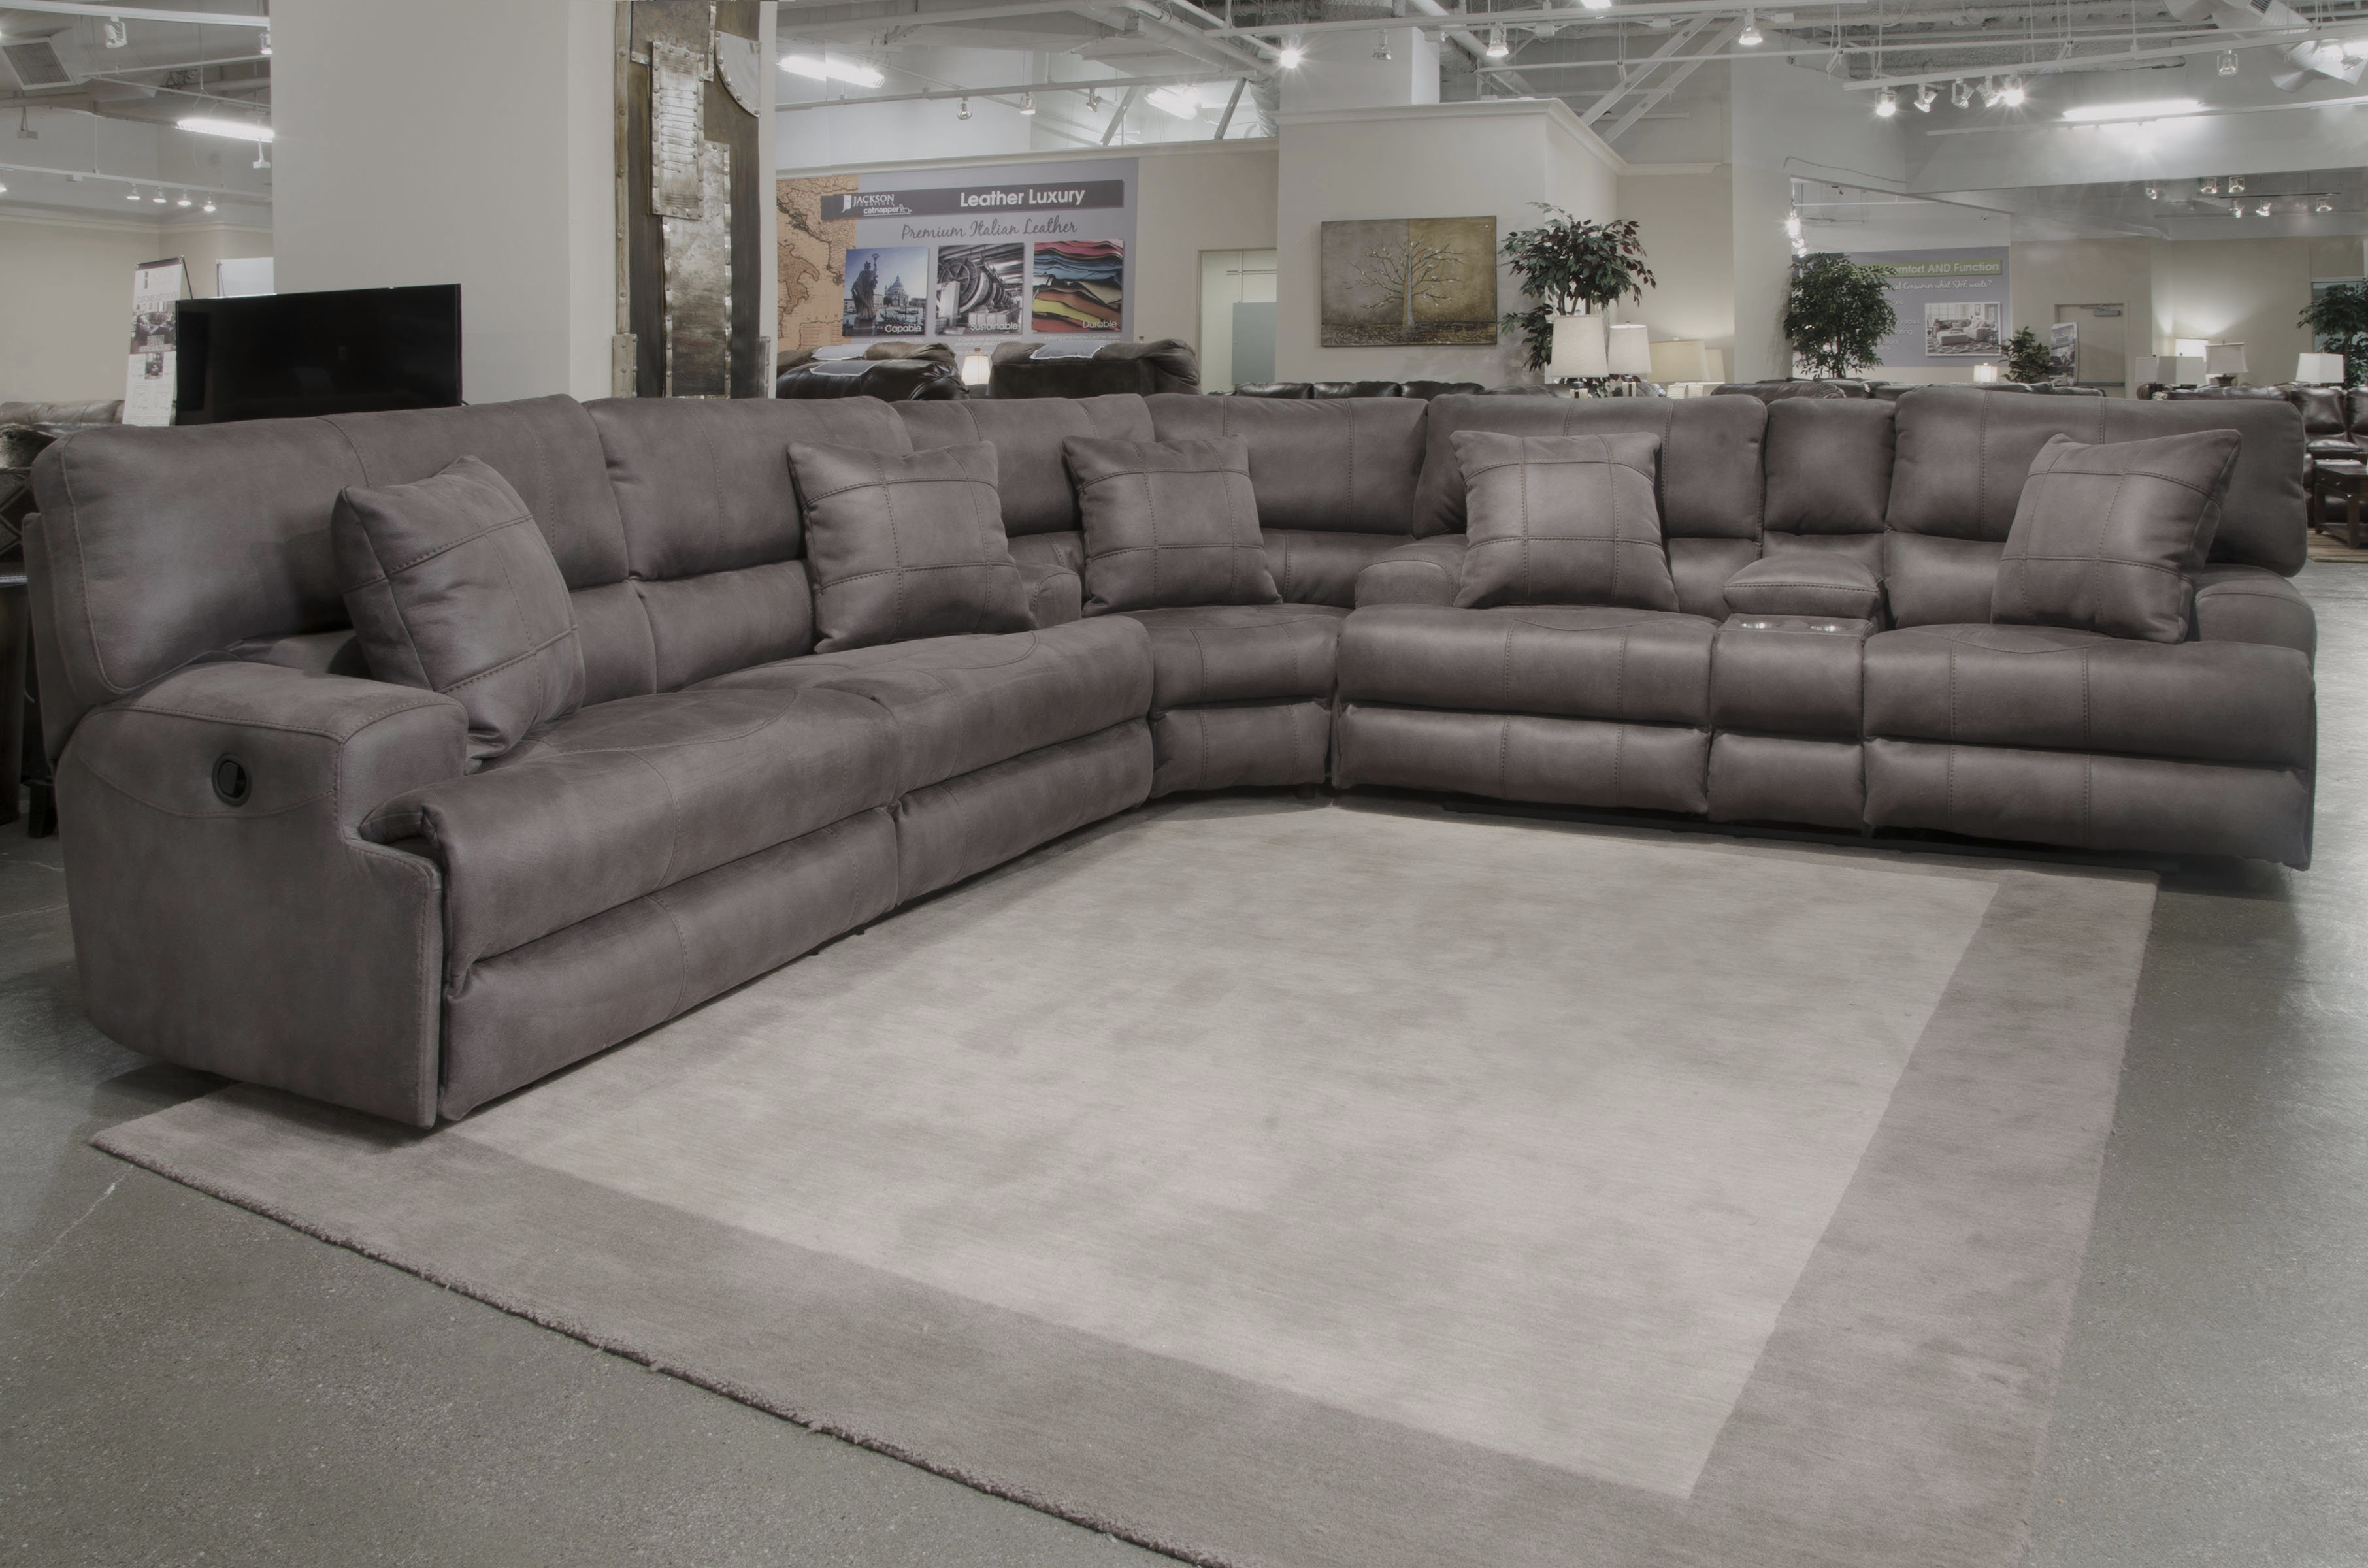 Catnapper Monaco Reclining Sectional | Wayfair pertaining to Jackson 6 Piece Power Reclining Sectionals With  Sleeper (Image 6 of 30)